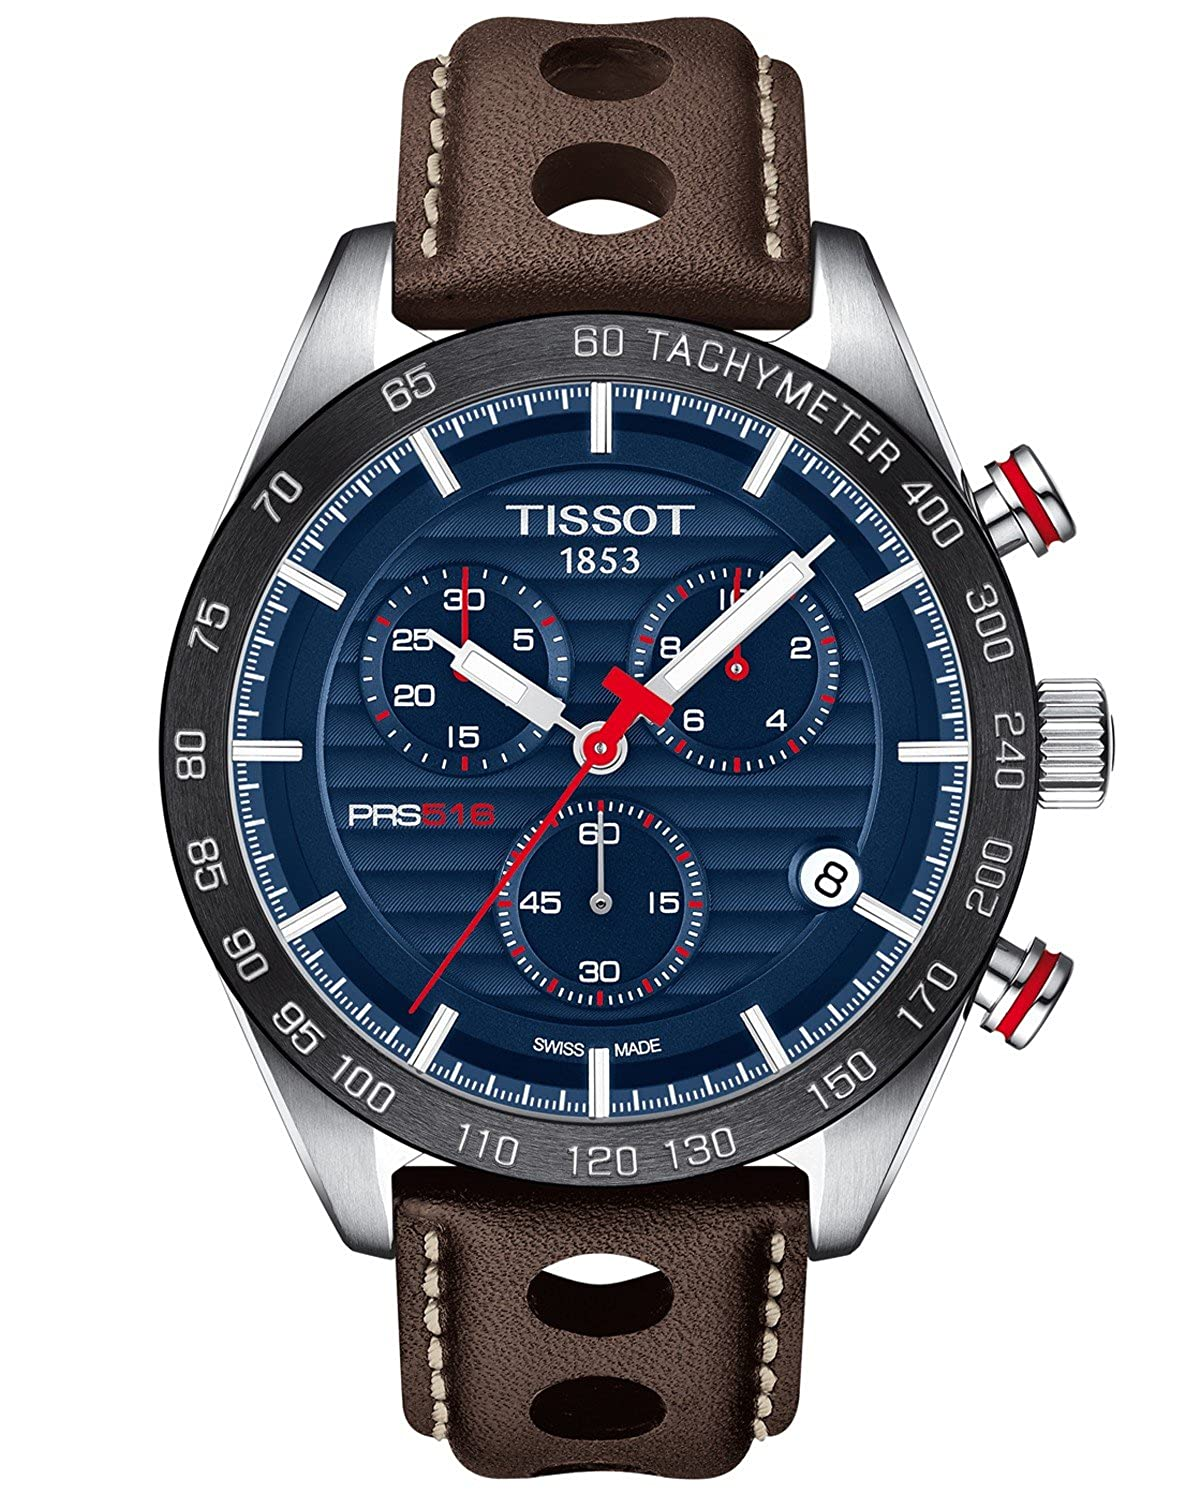 Tissot best Chronograph watch in India